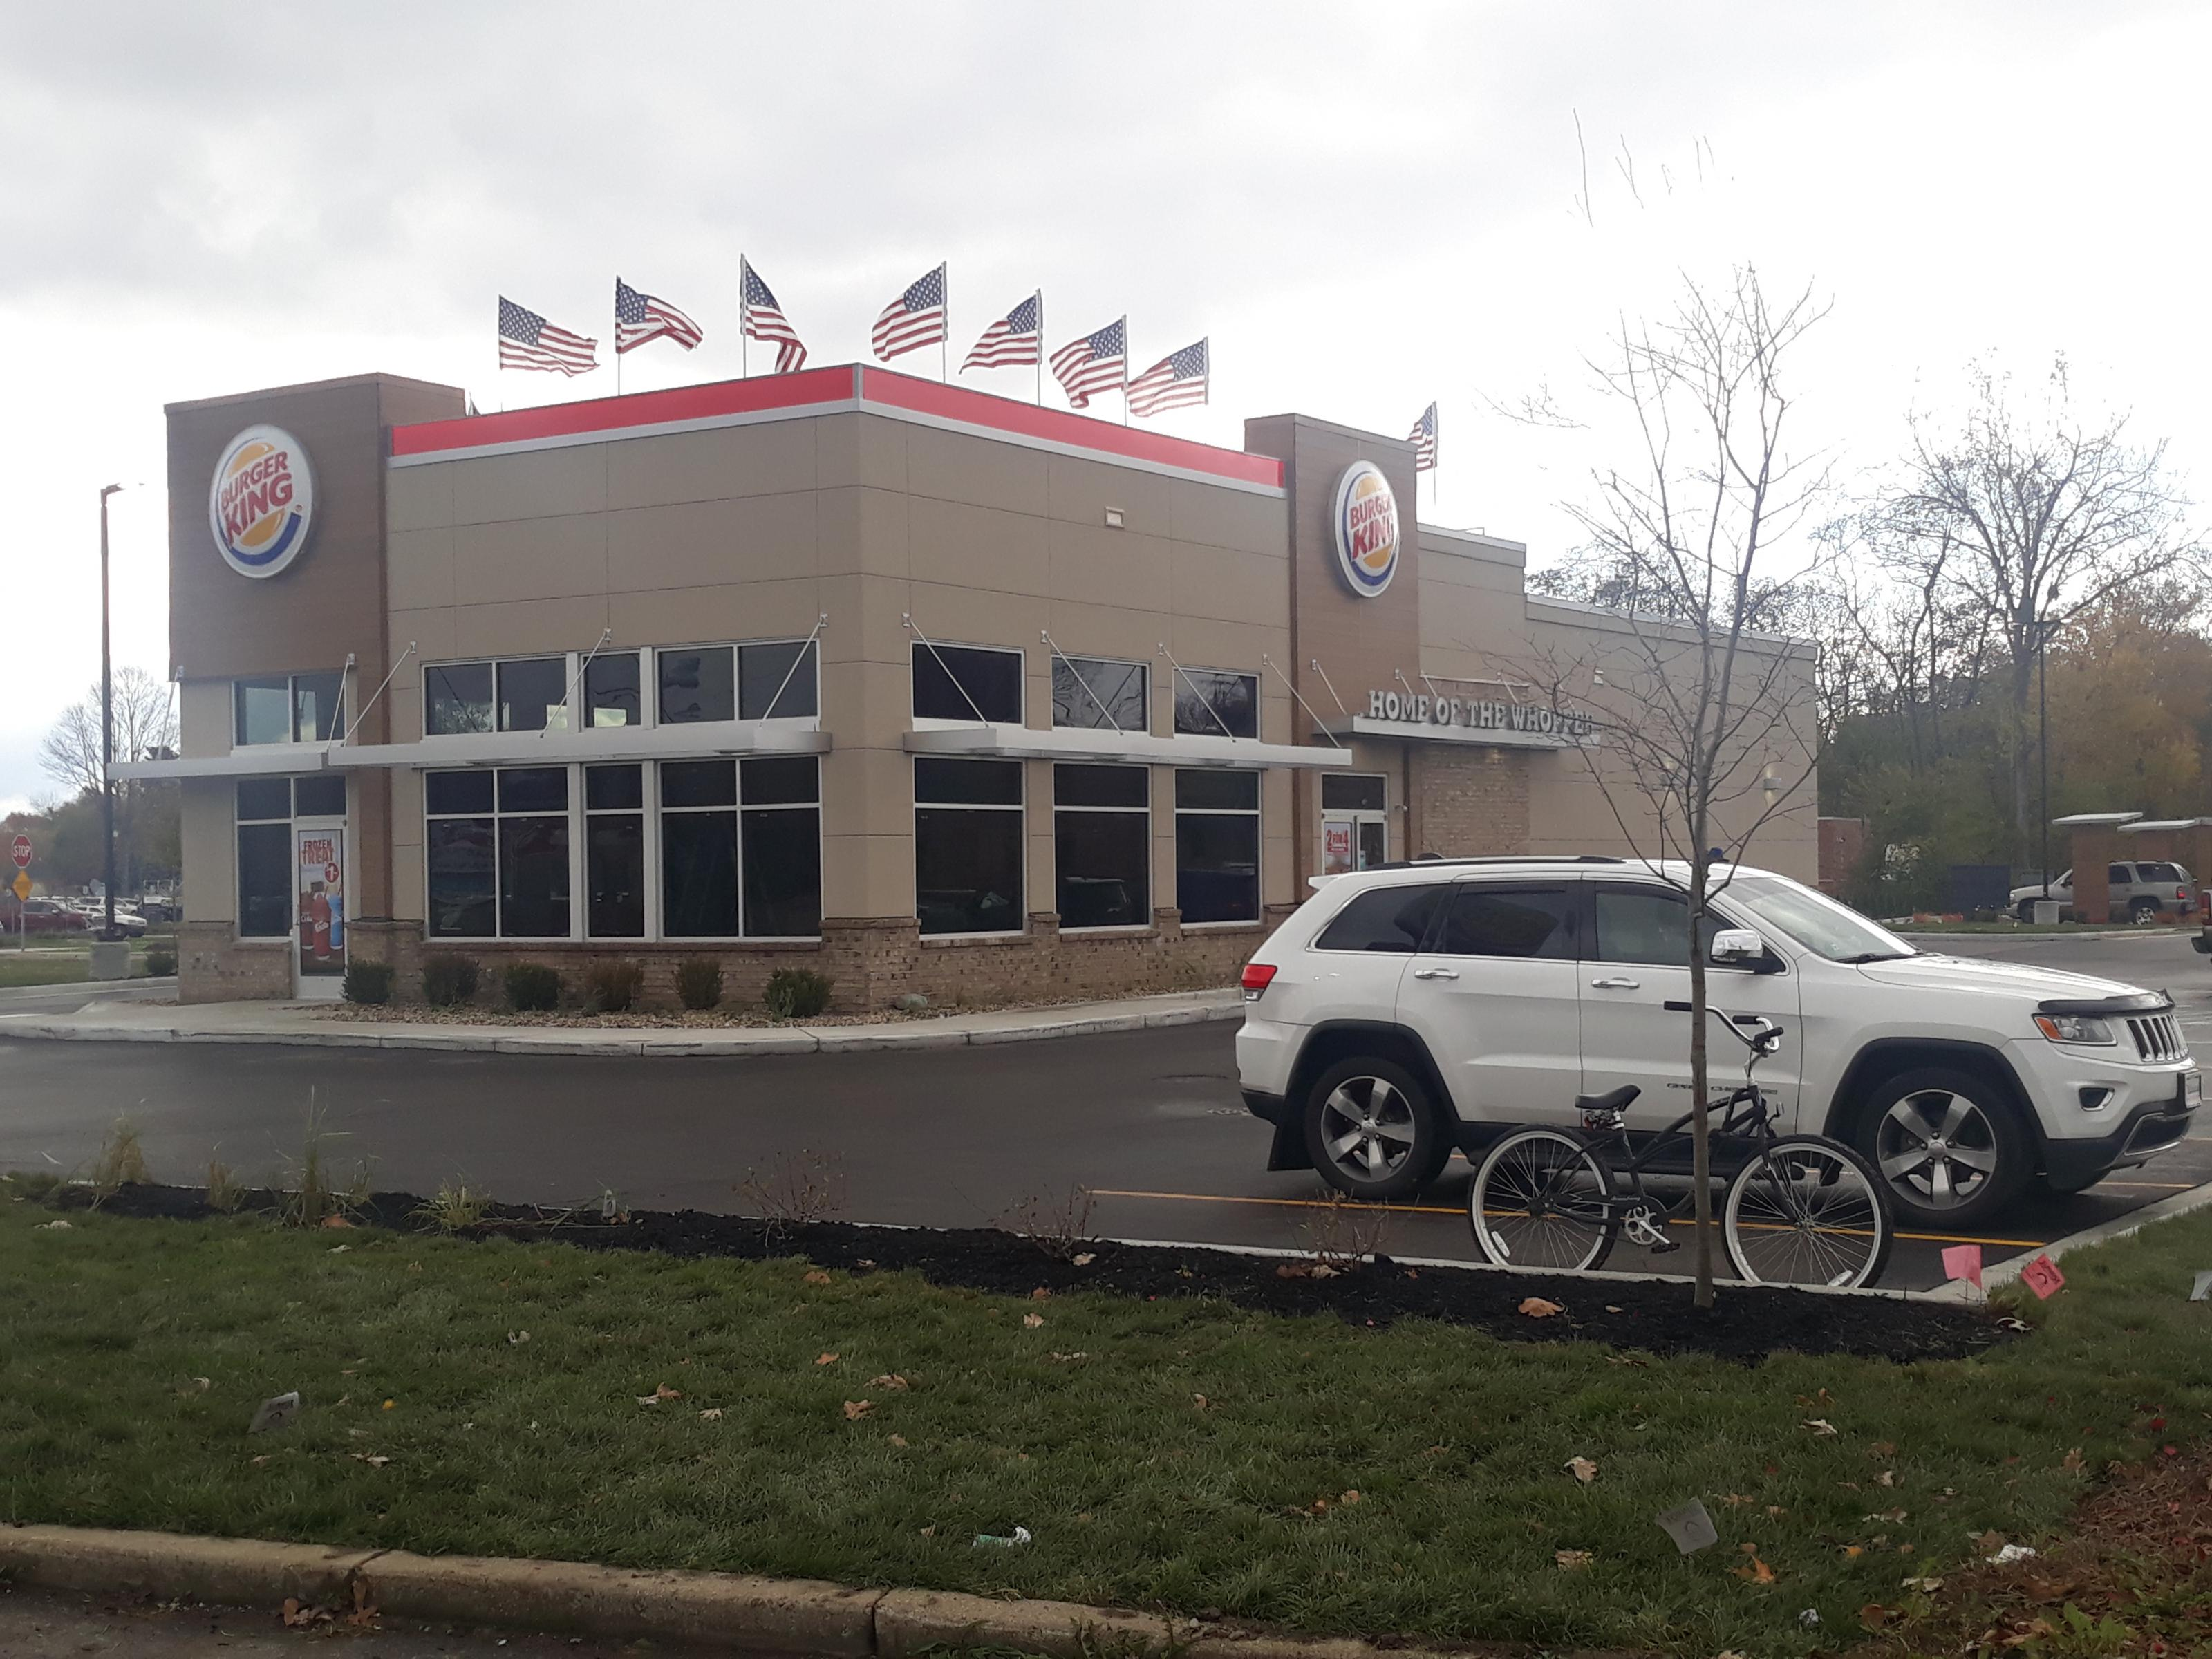 New Castle Opens for Burger King